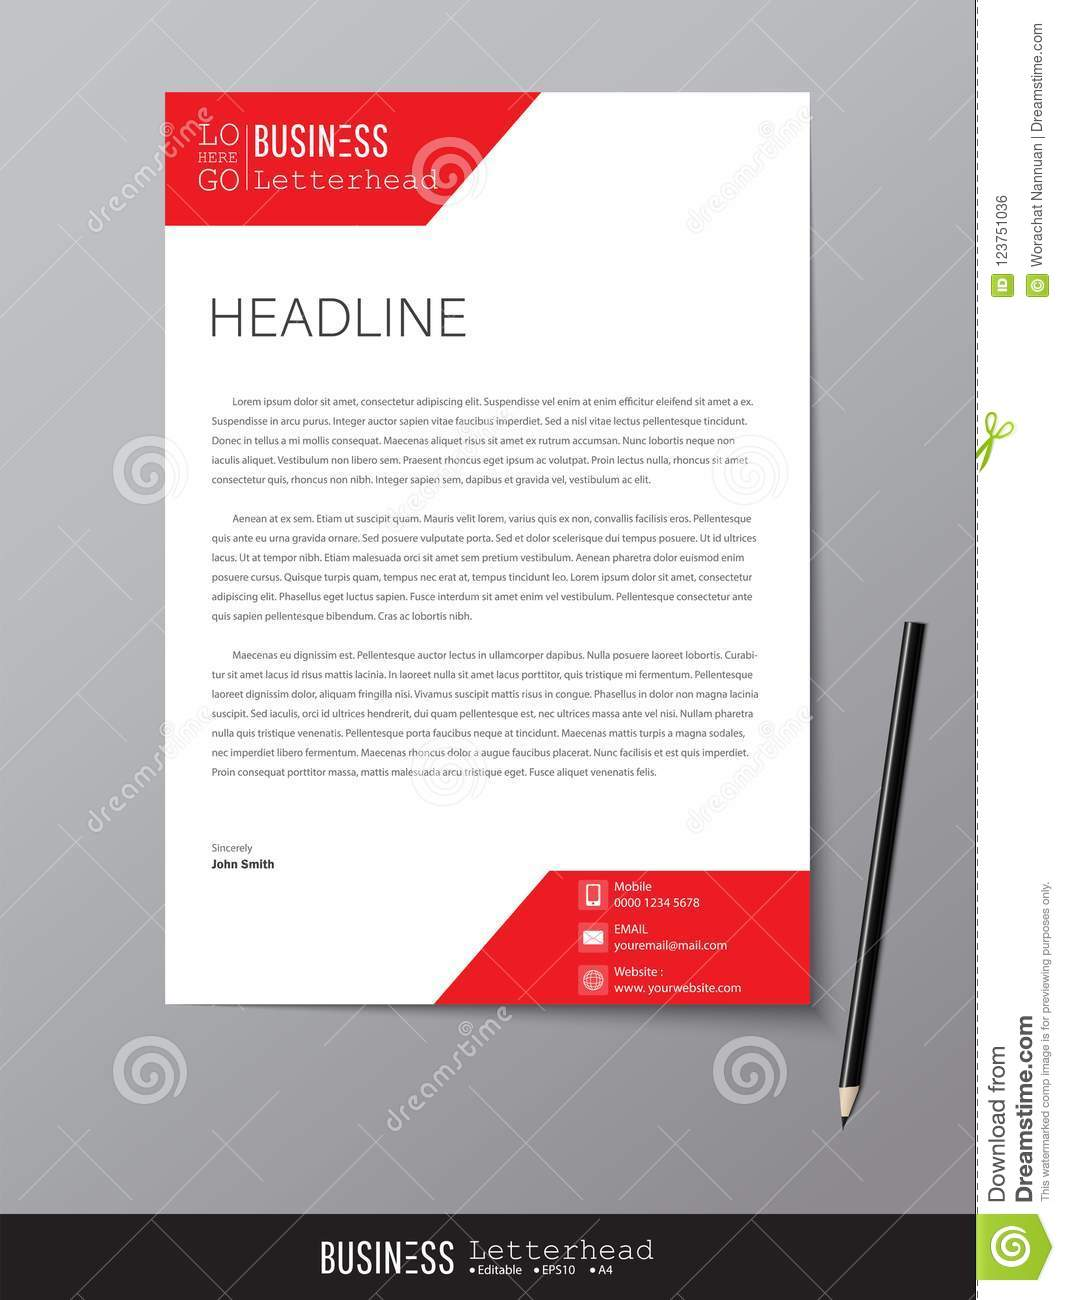 Letterhead Design Template And Mockup Minimalist Style ... on letter design objects, letter design examples, letter design stencils, letter design christmas, letter design paper, letter design ideas, letter design fonts, letter design cards, letter design printables, letter typography, letter g designs, letter design drawings, letter design clipart, letter t designs, letter design logos, letter design help,